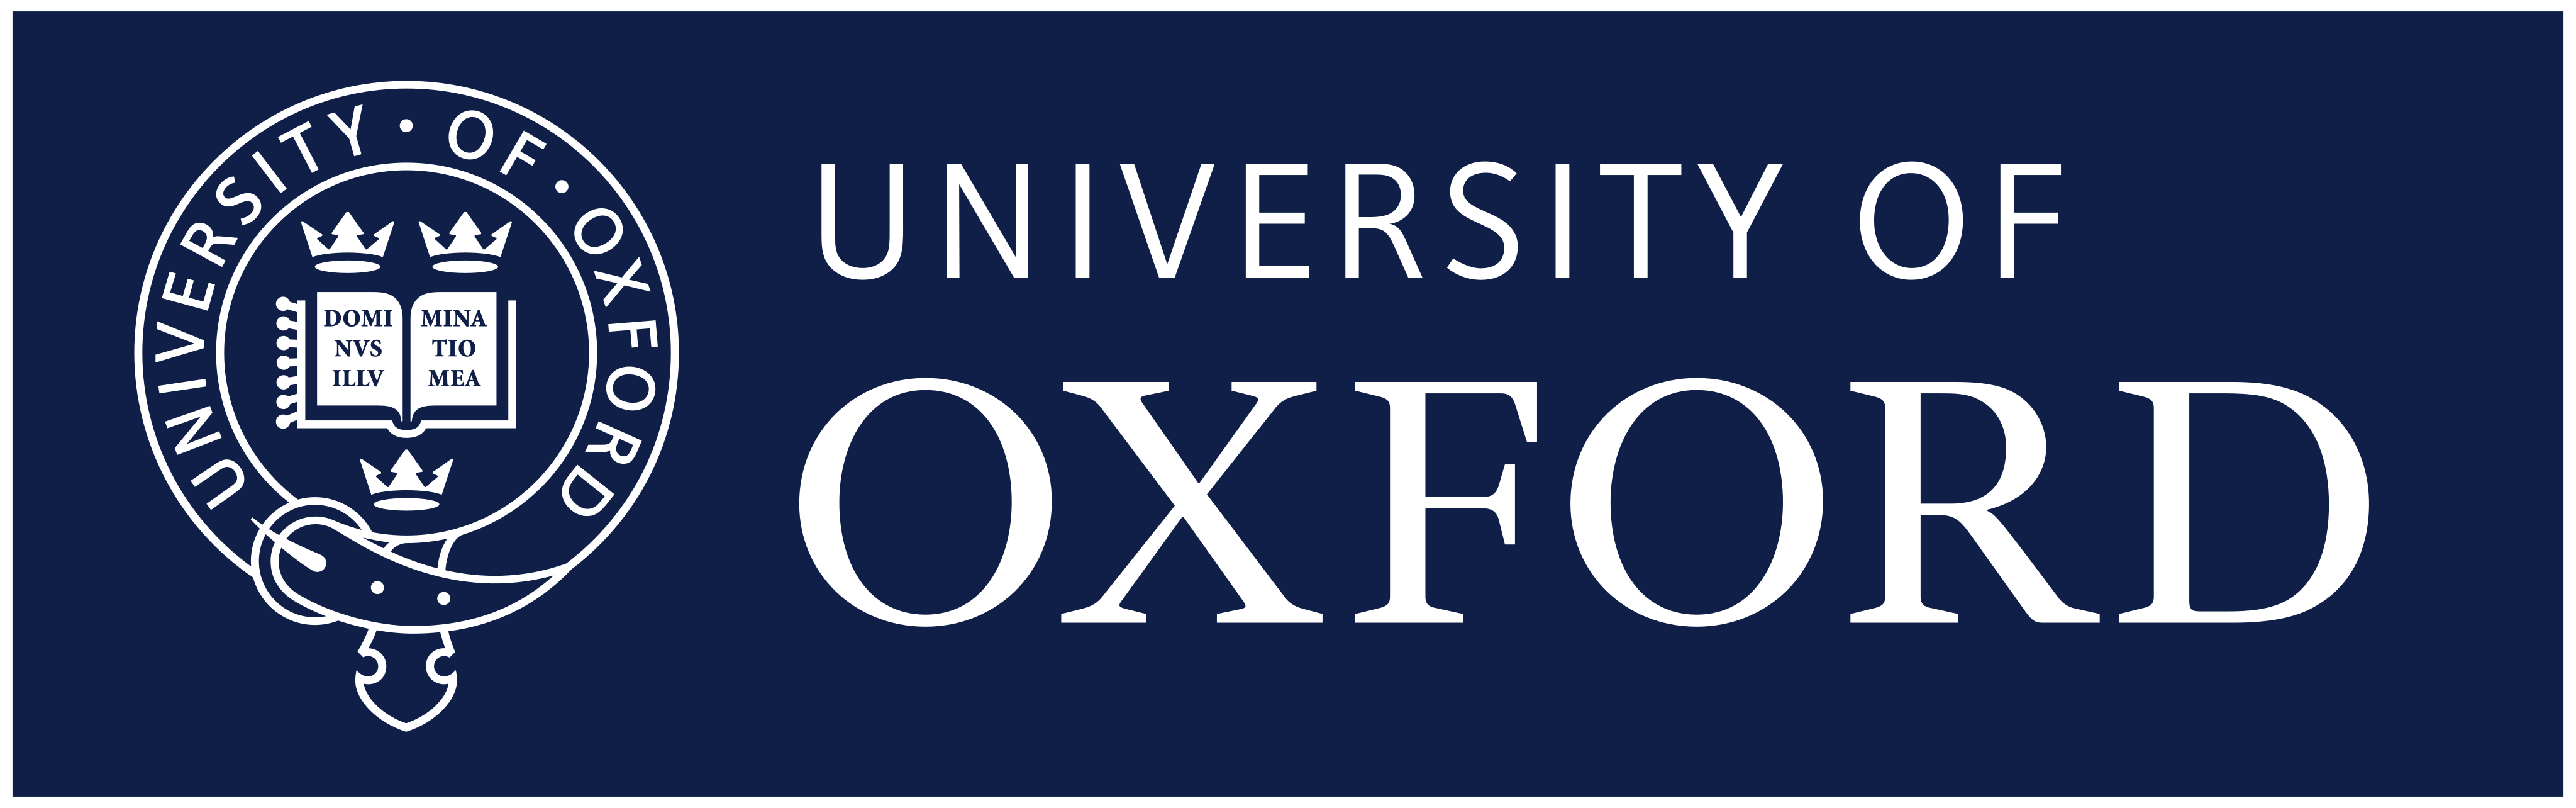 university of oxford logo - Universidad de Oxford Logo